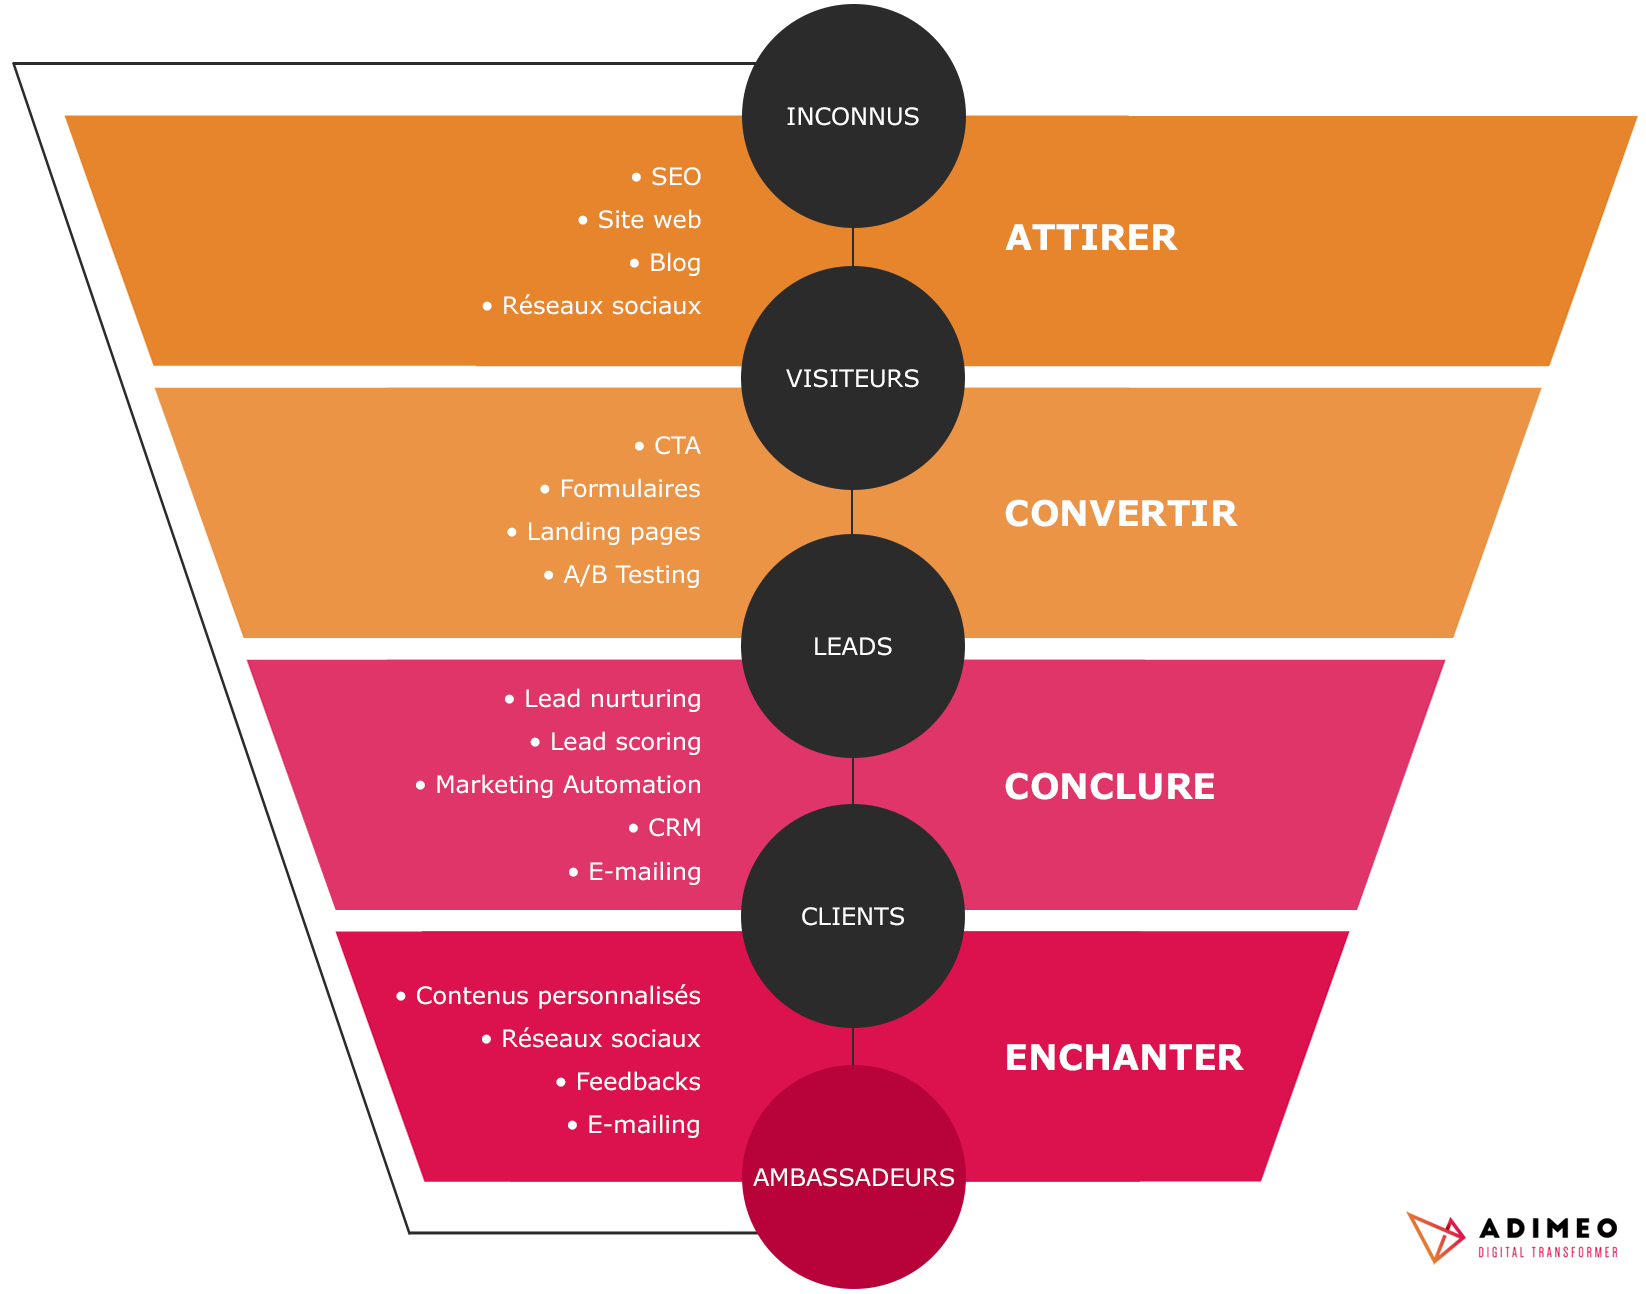 schema_inbound_marketing-adimeo